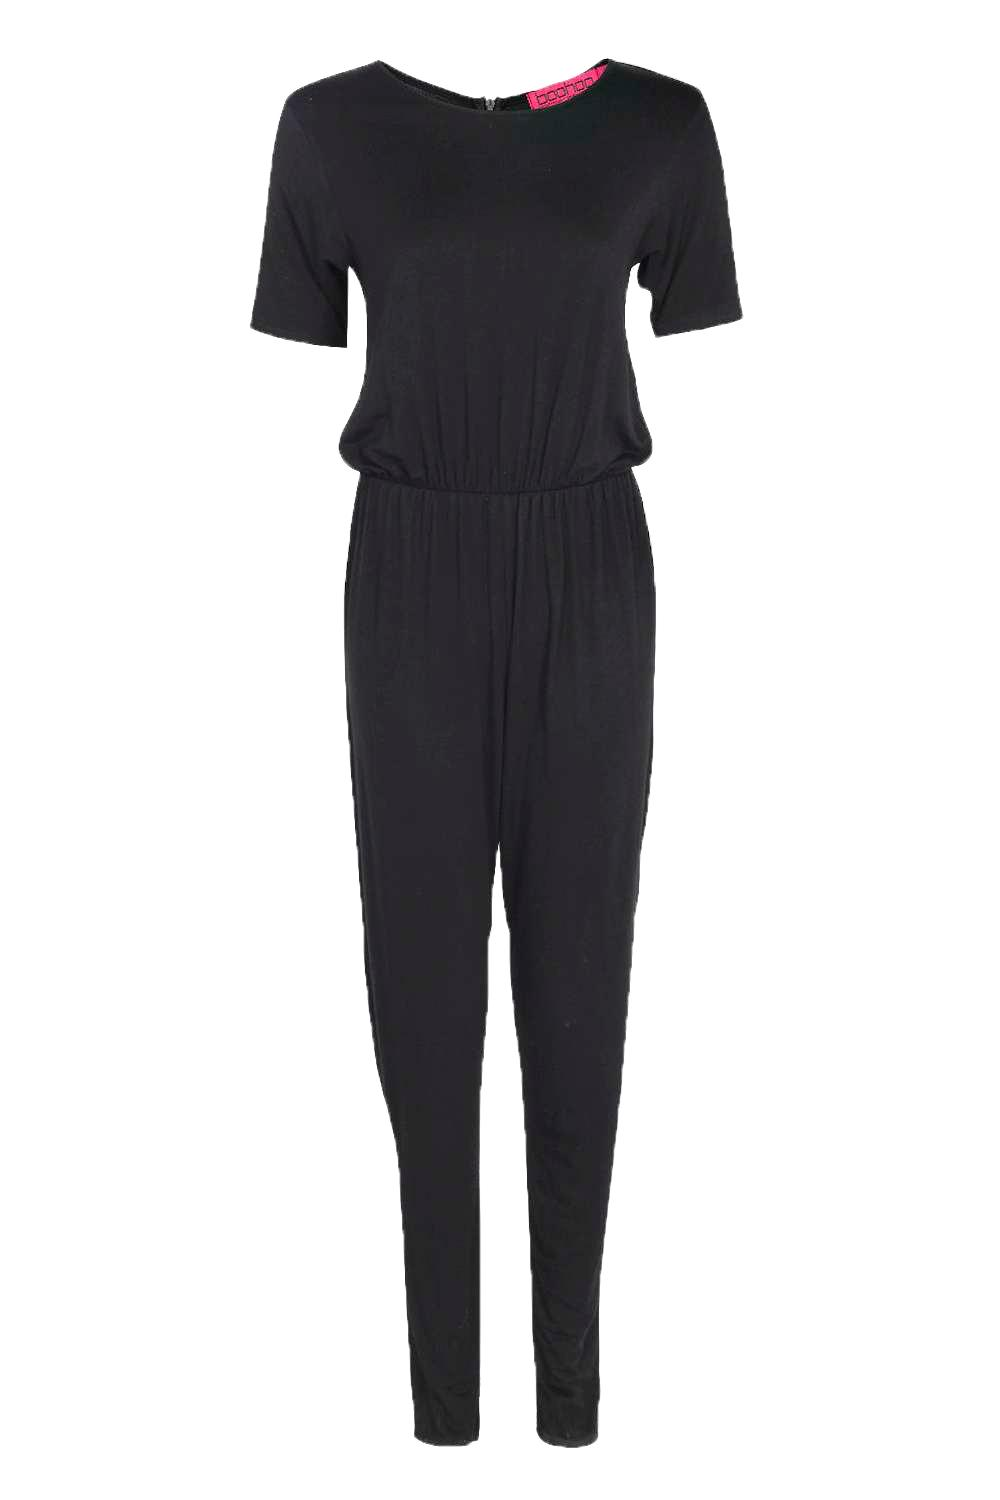 black t shirt style dress jumpsuits